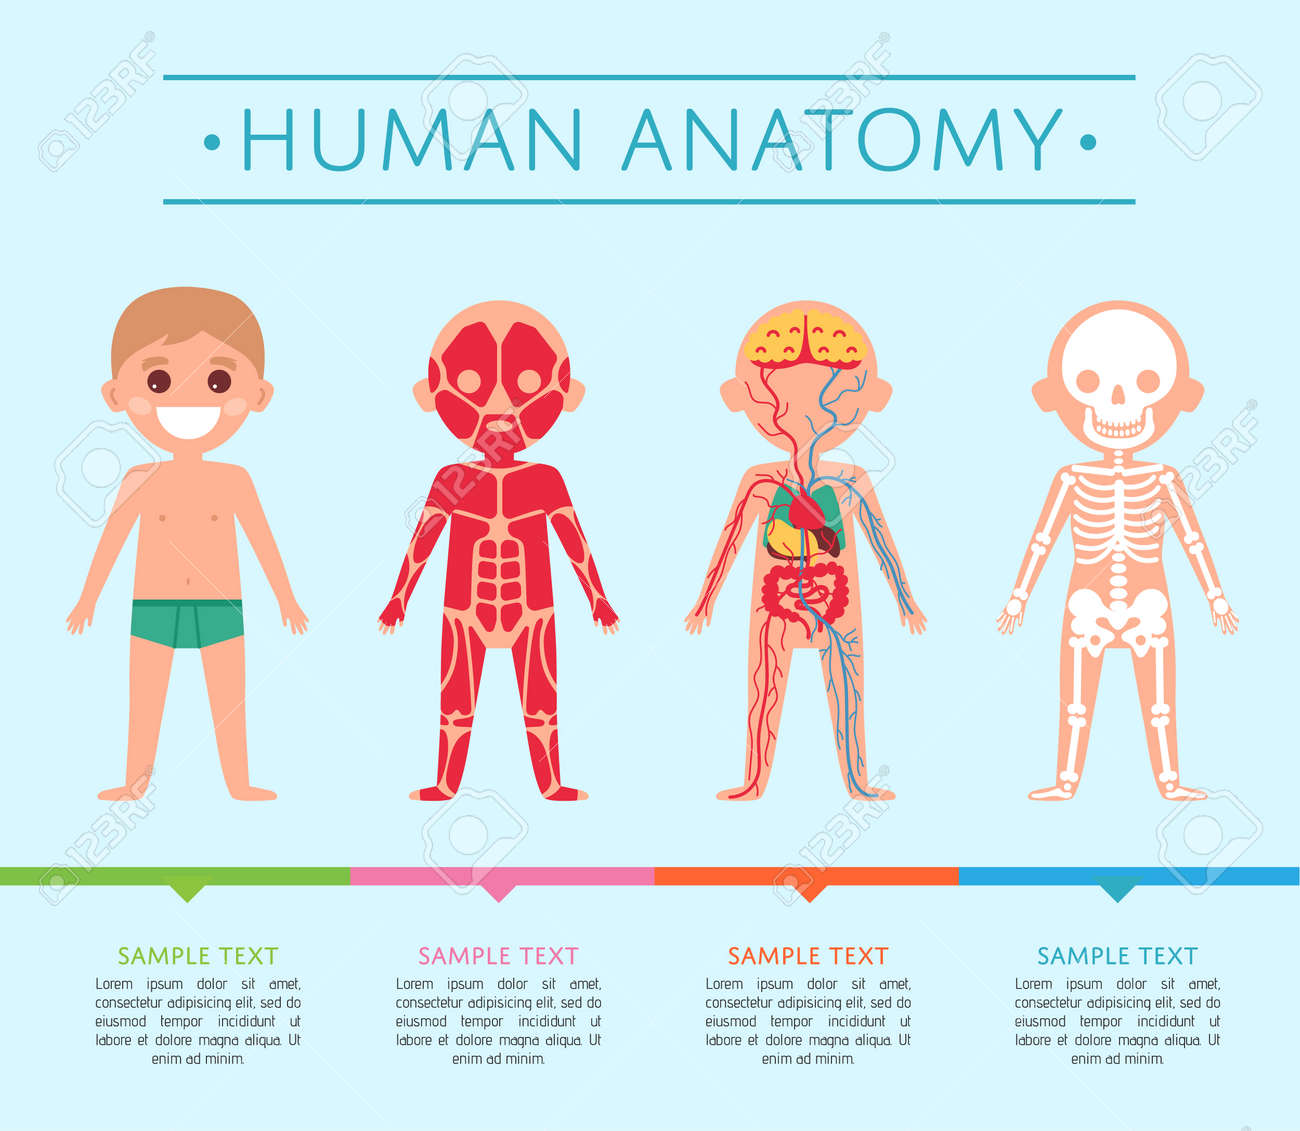 Human Anatomy Medical Poster With Child. Male Skeleton, Muscular ...